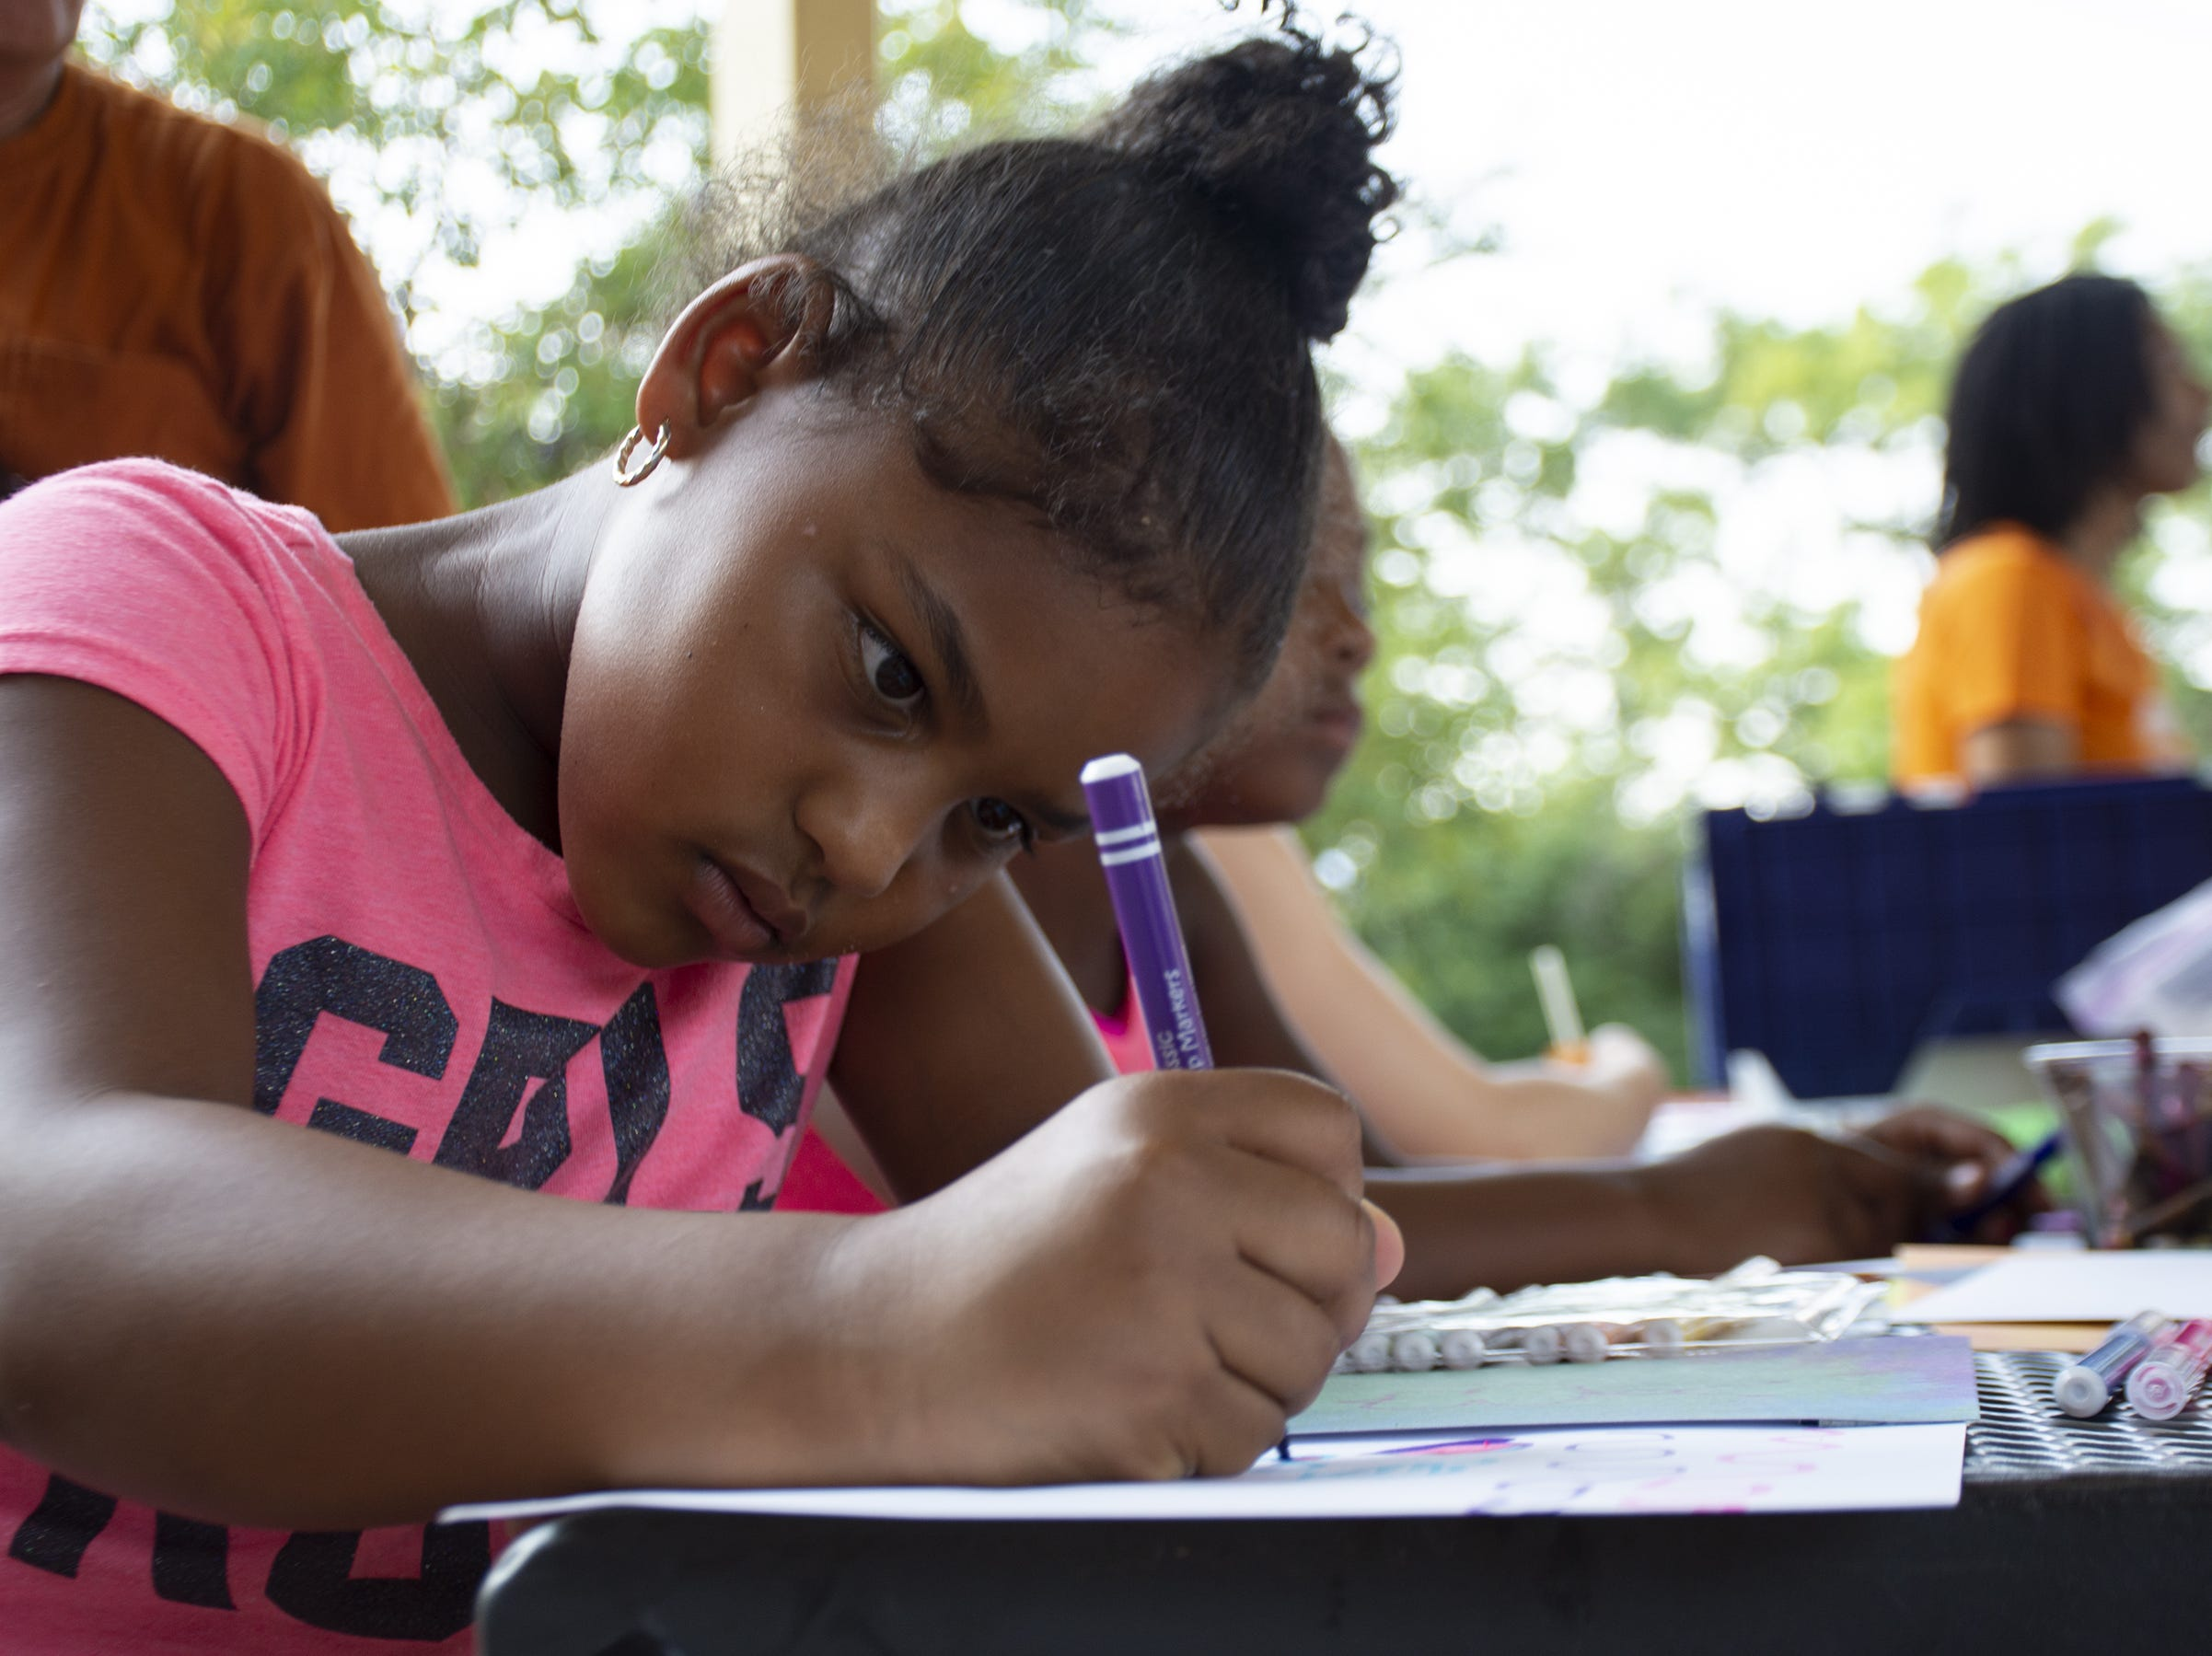 Za'niyah Smallwood, 7, colors her drawing at the Art in The Parks event at Renaissance Park in York on Monday night.